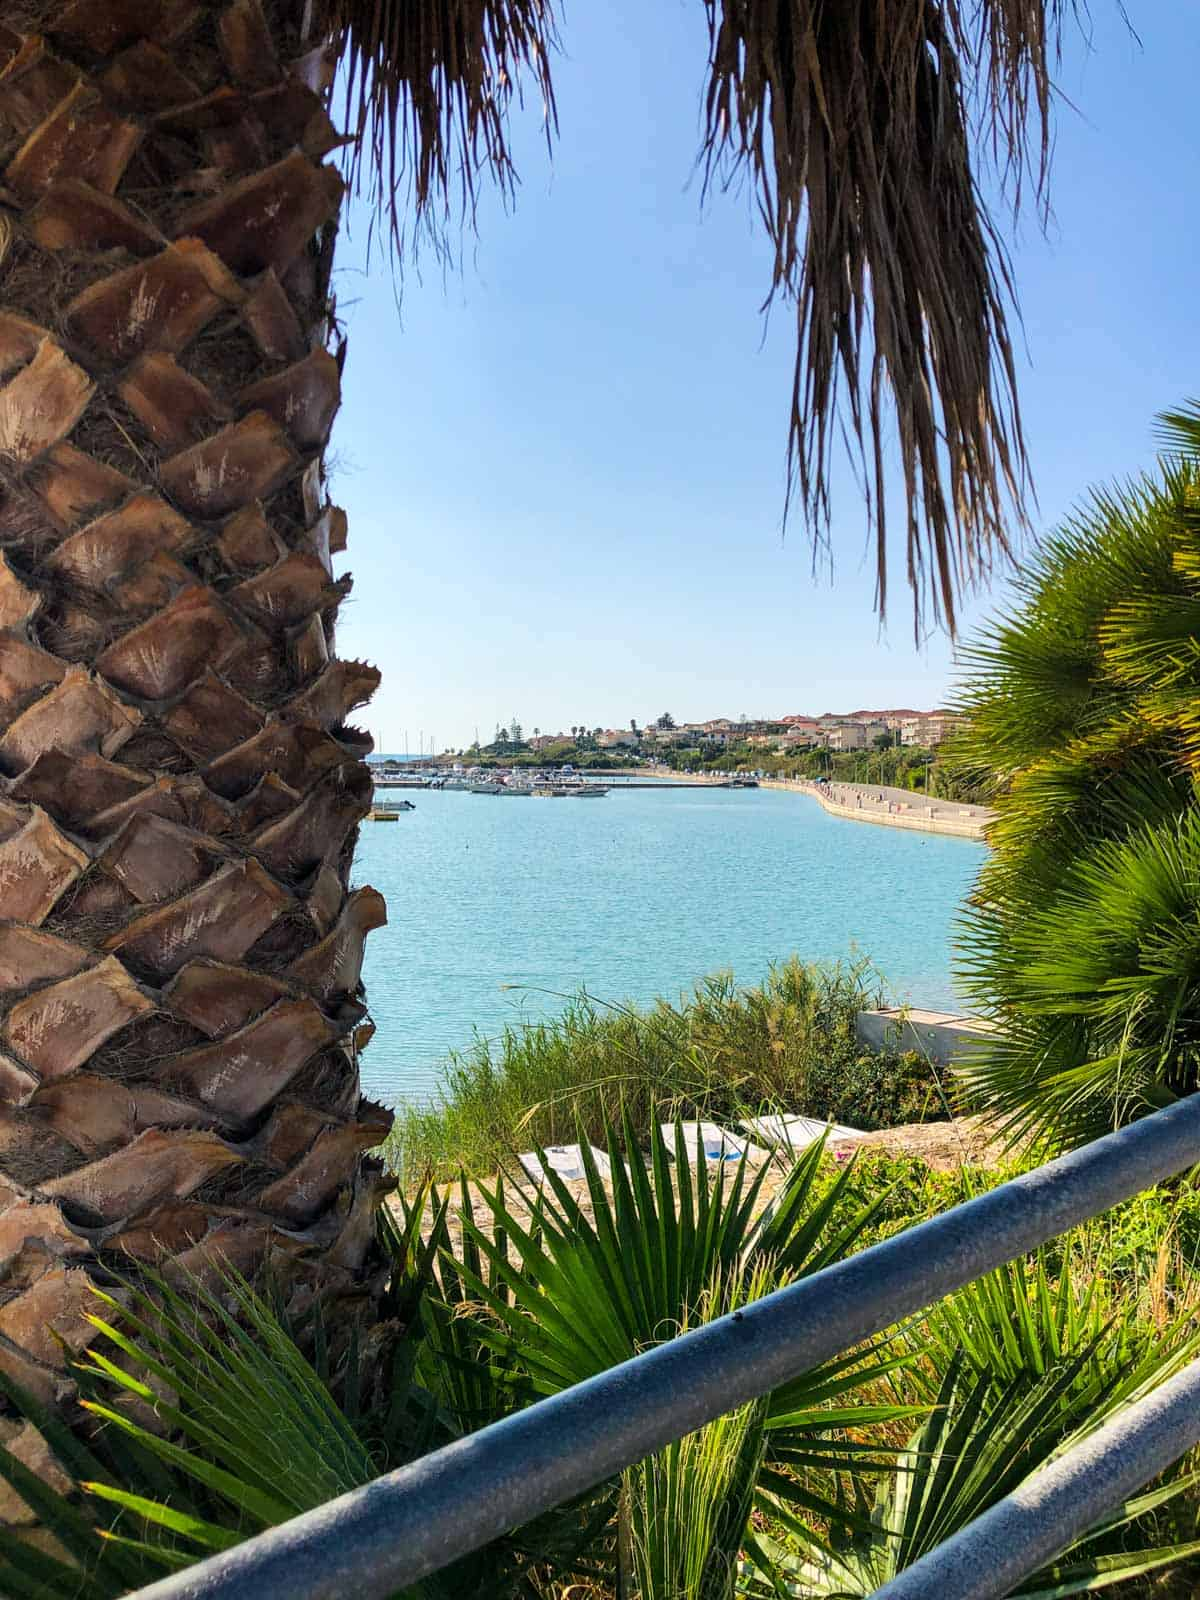 View of Ragusa Marina with a palm tree in the foreground